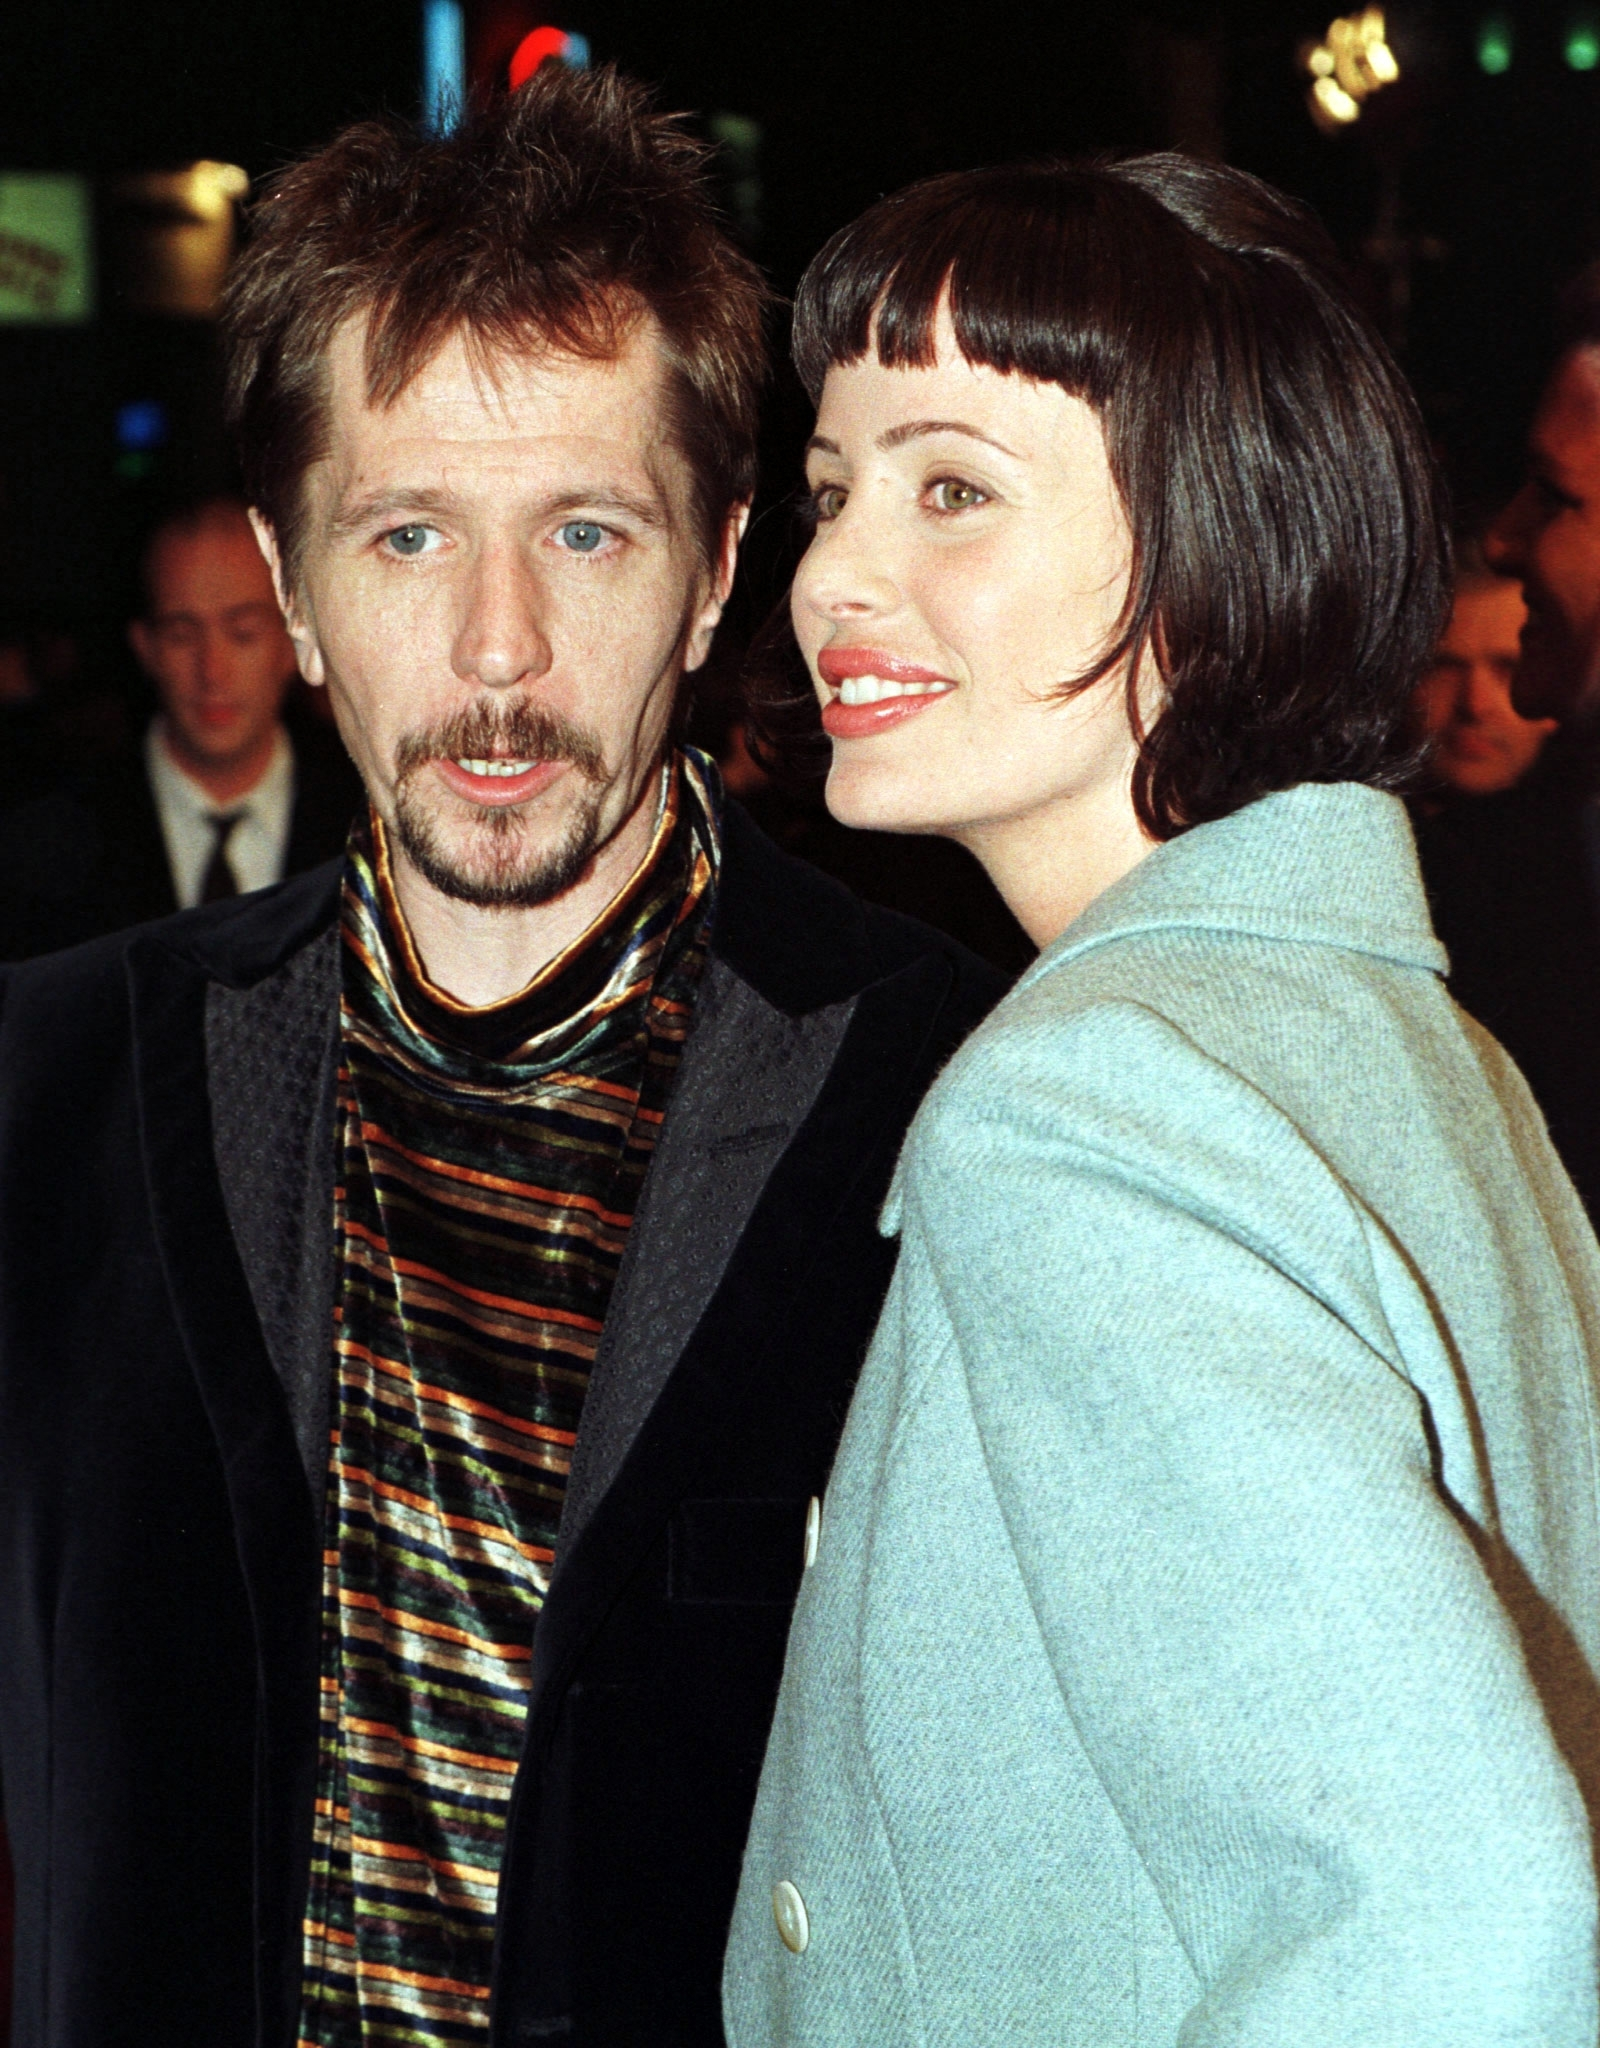 Gary Oldman S Ex Wife Claims He Stole My Children And Ruined My Life Wants Him To Take